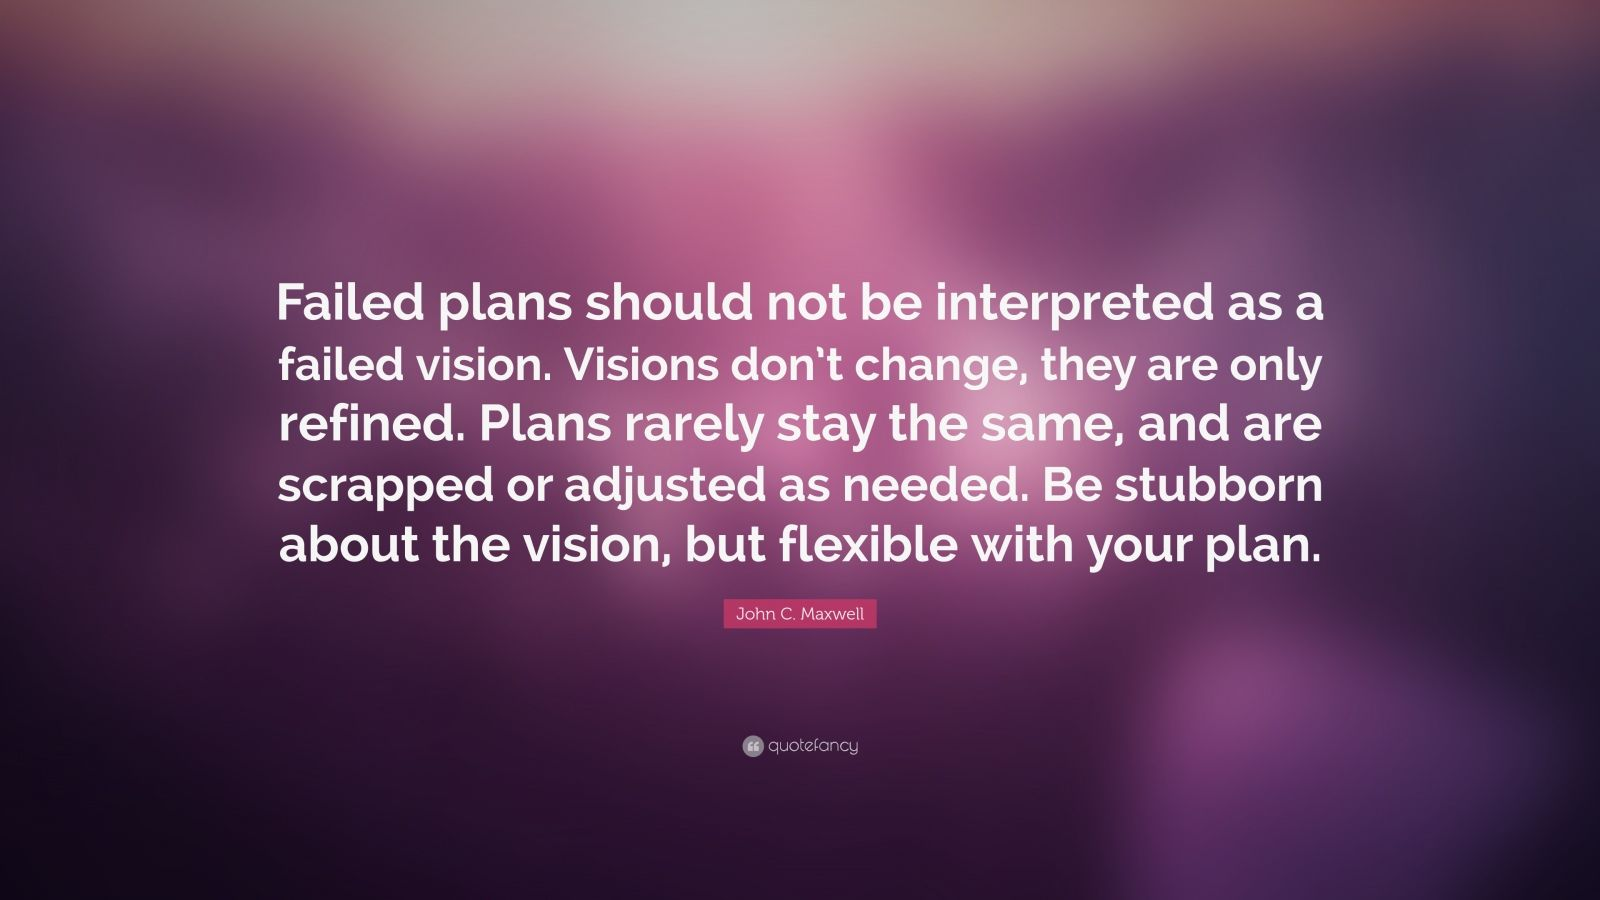 "John C. Maxwell Quote: ""Failed plans should not be interpreted as a failed vision. Visions don't change, they are only refined. Plans rarely stay the same, and are scrapped or adjusted as needed. Be stubborn about the vision, but flexible with your plan."""